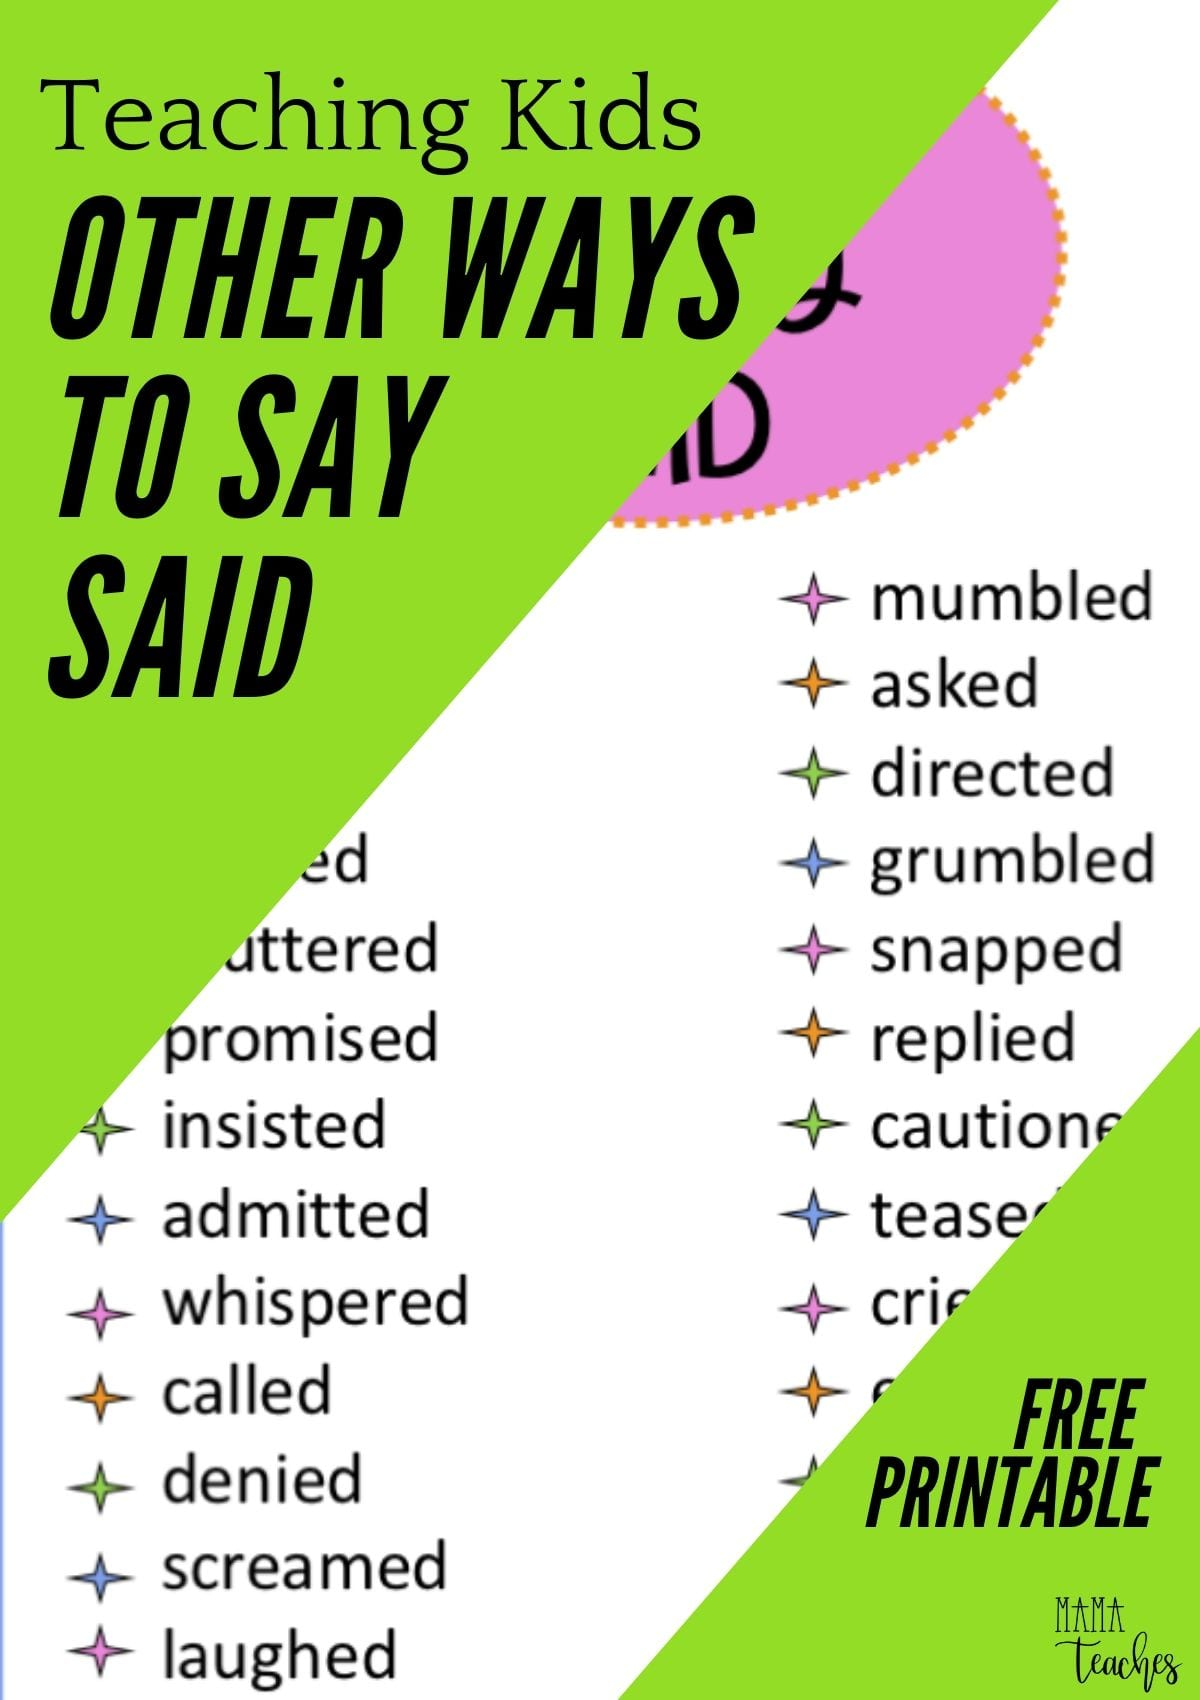 Teaching Kids Other Ways to Say Said - Free Printable Anchor Chart for Teaching Writing -  MamaTeaches.com